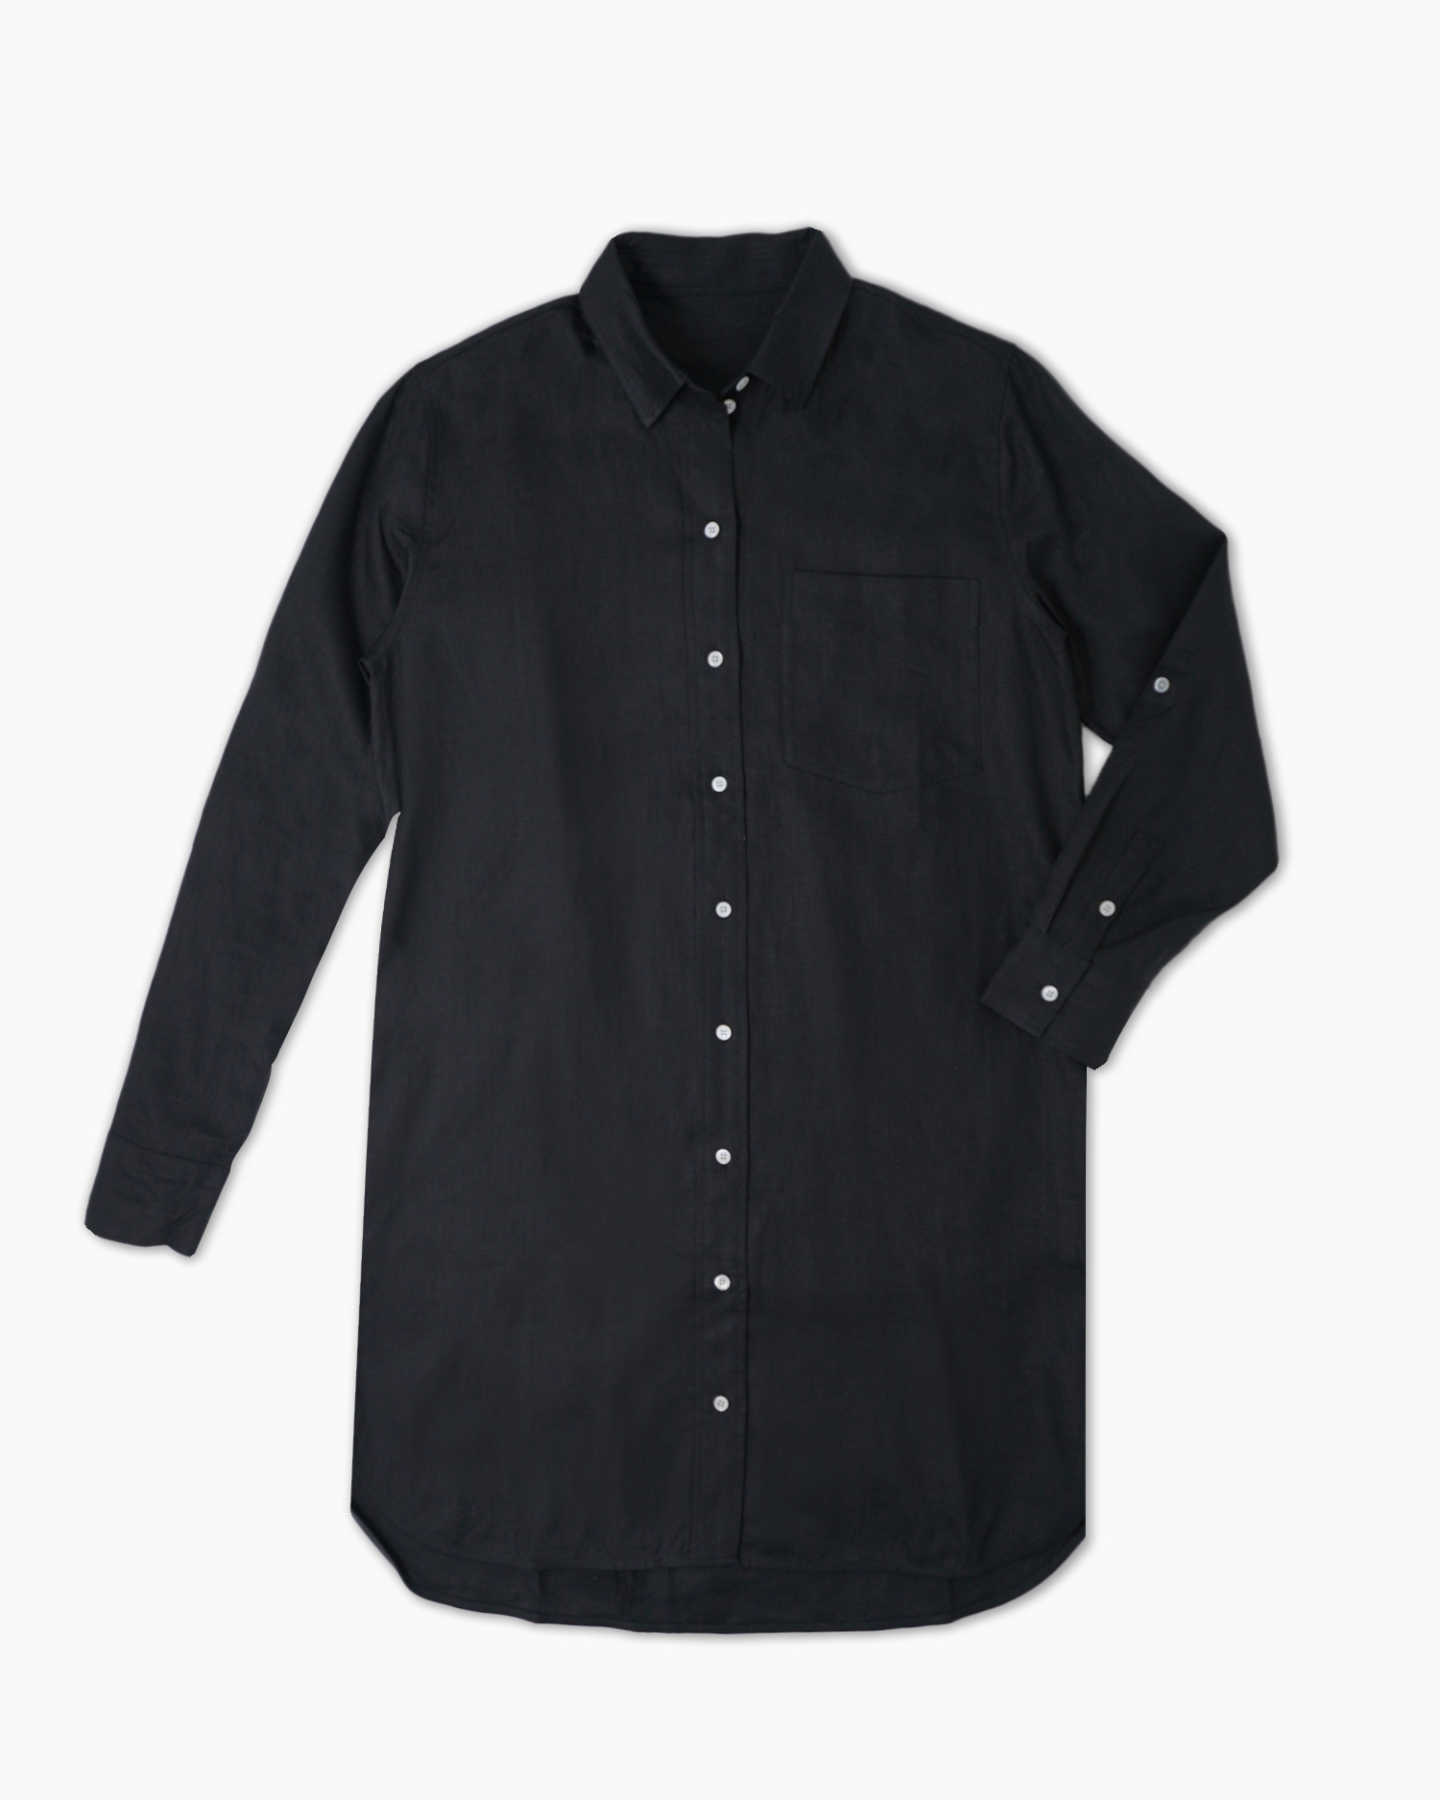 You May Also Like - 100% Organic Linen Shirt Dress - Black